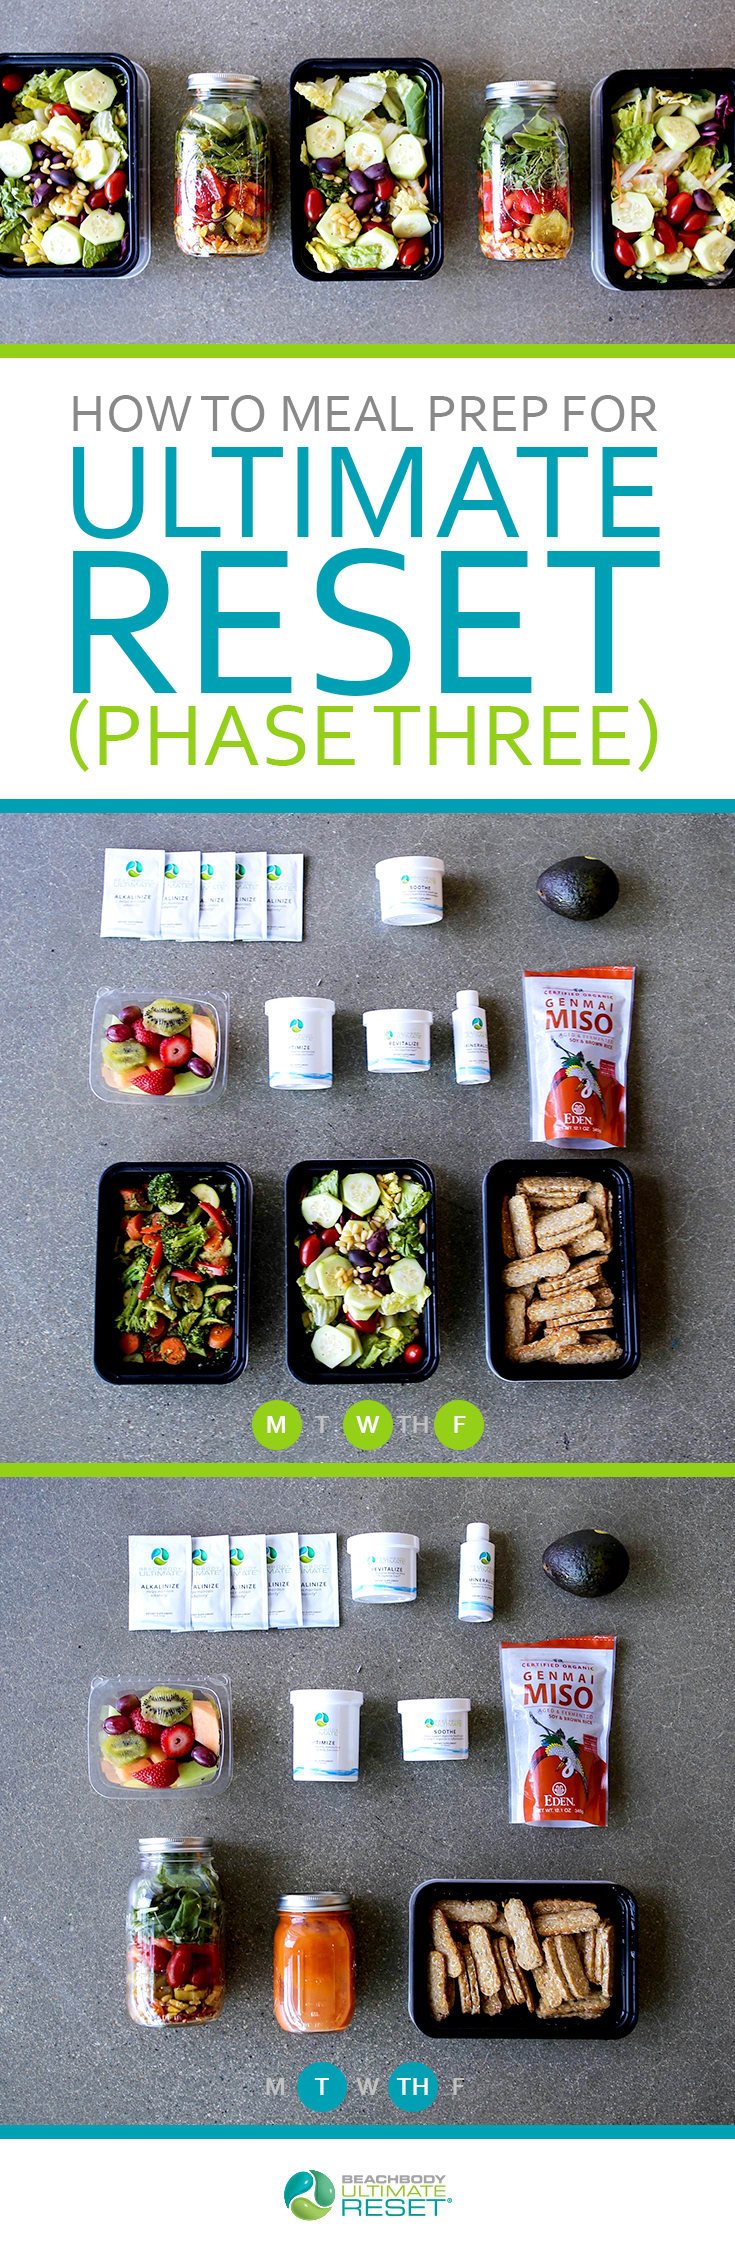 Ultimate Reset Meal Prep (Phase Three)